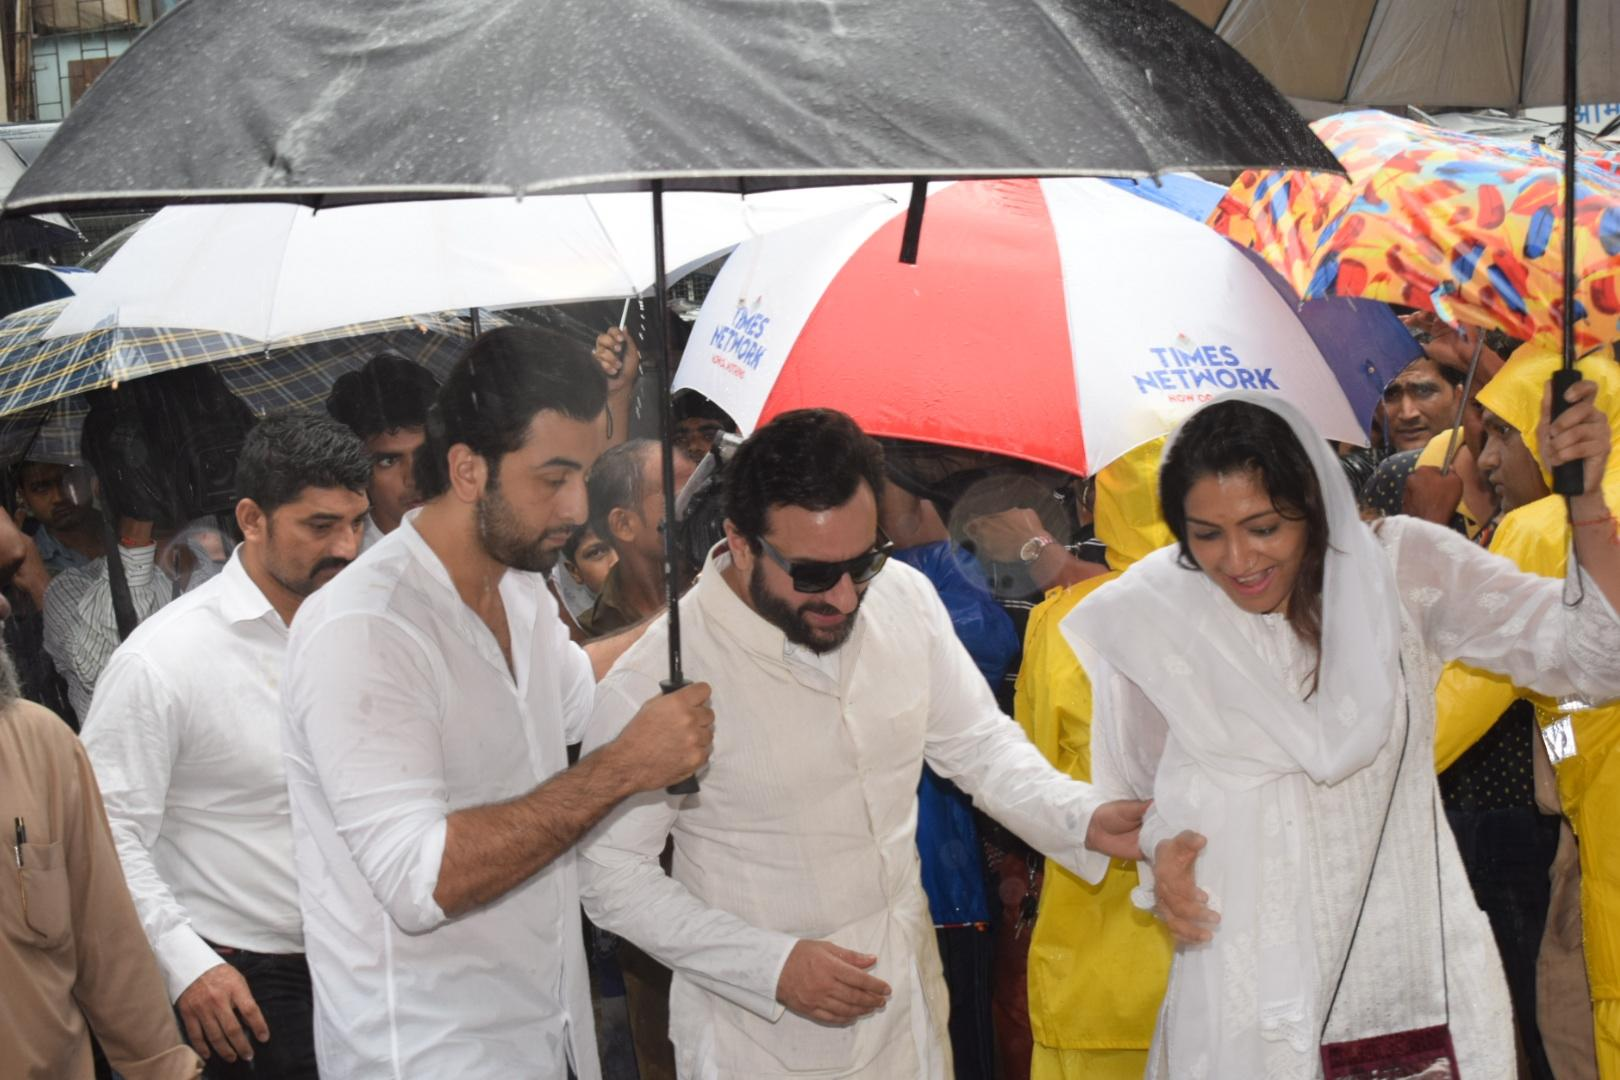 Actors Ranbir Kapoor and Saif Ali Khan seen at the state funeral. (Image credit: IANS)